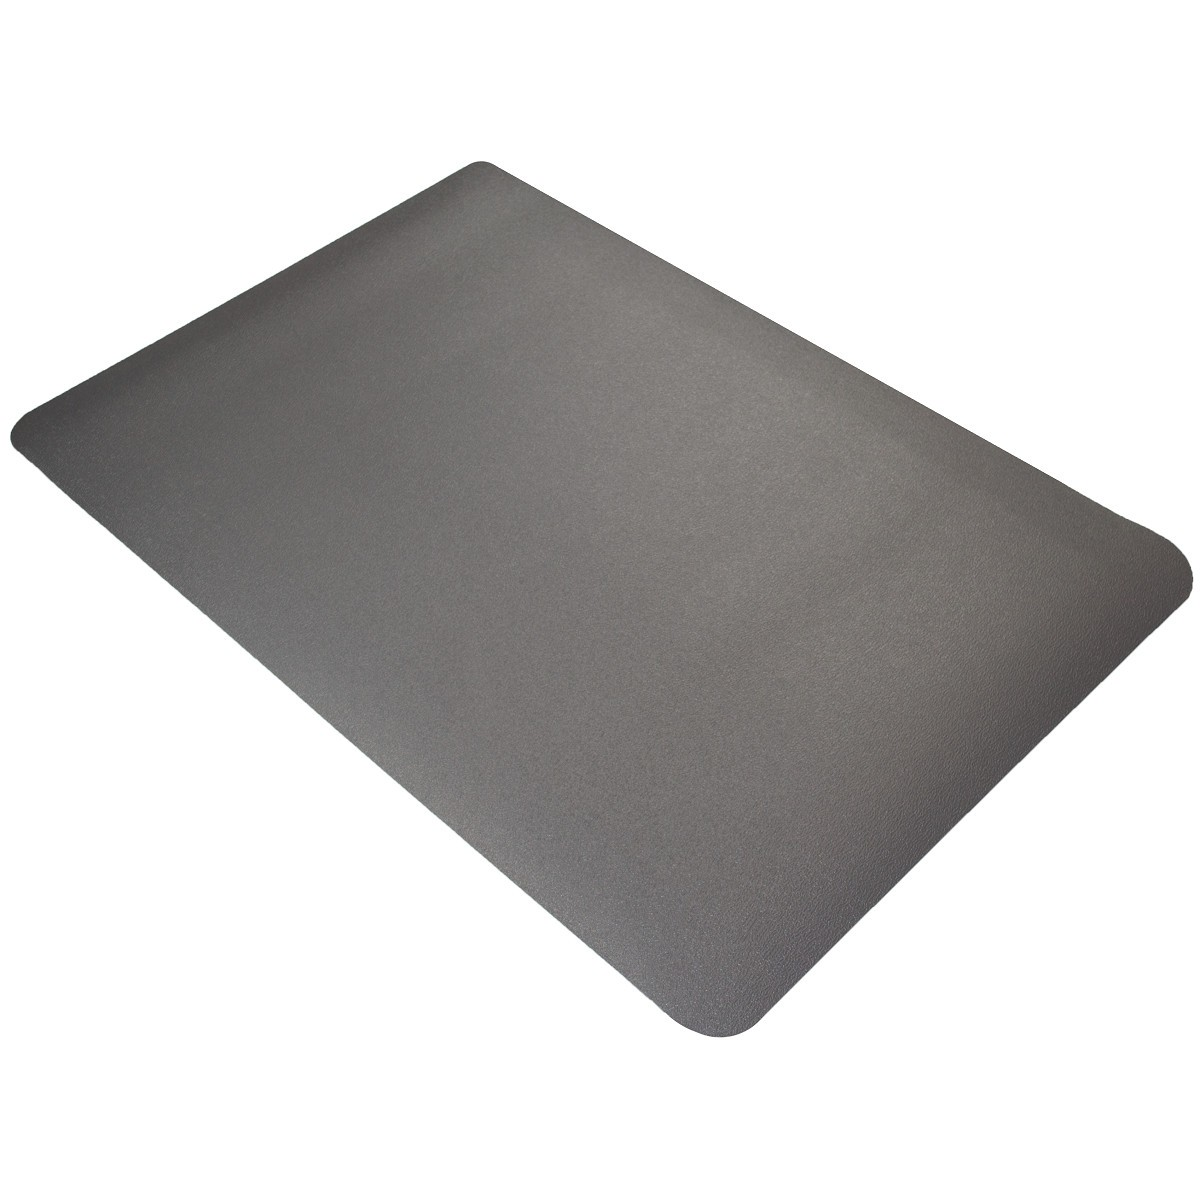 Wearwell 423 Soft Rock Floor Mat Slate Fullsource Com